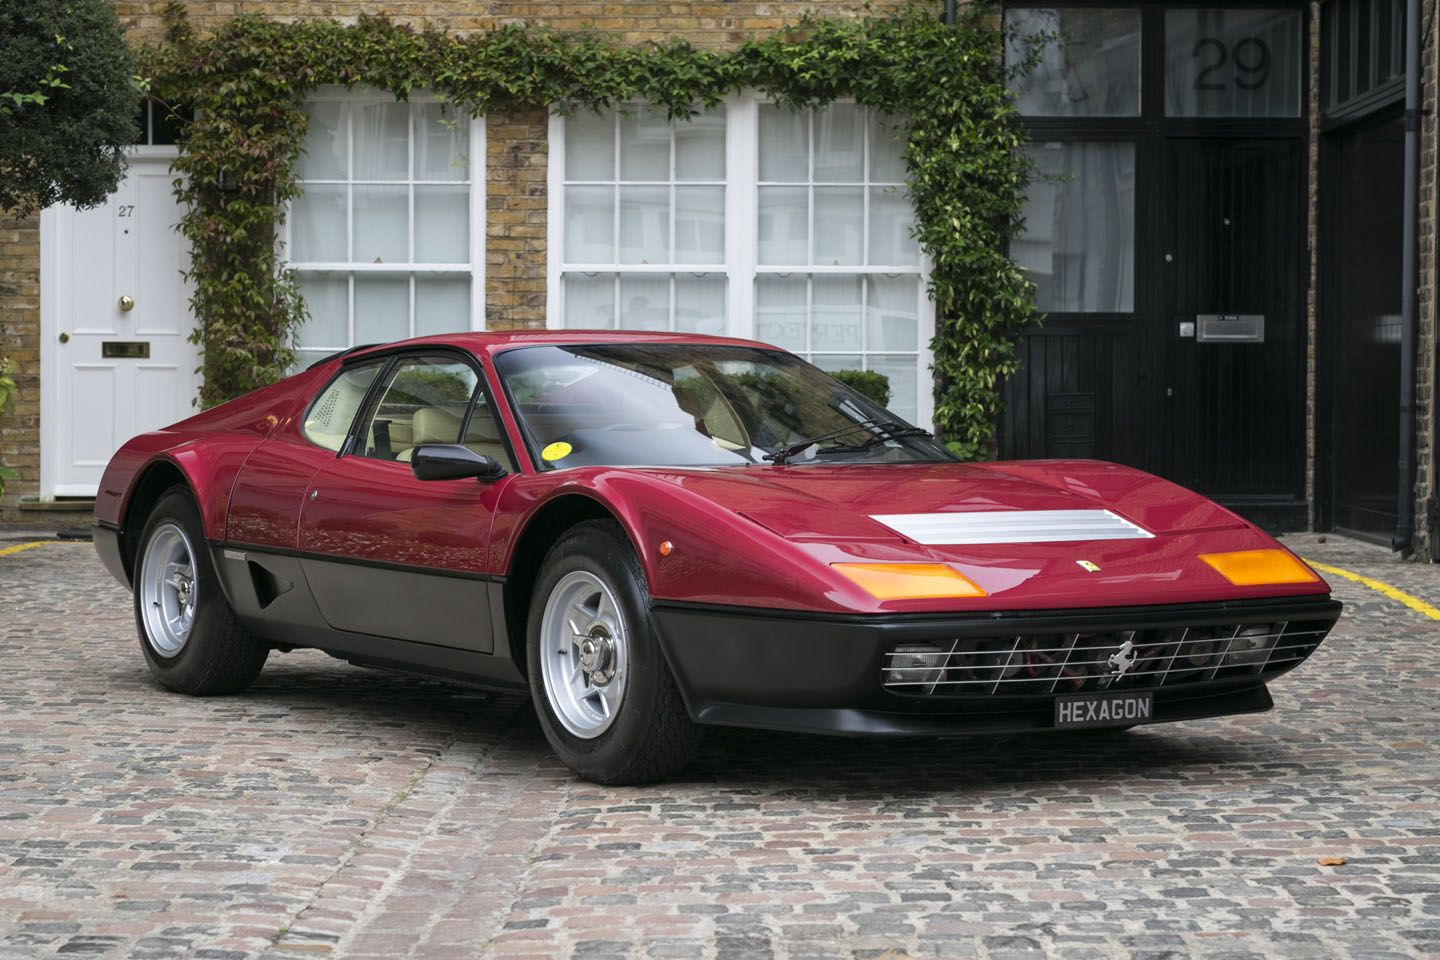 Searching For A Ferrari Bb 512 Carburettor 1978 In London We